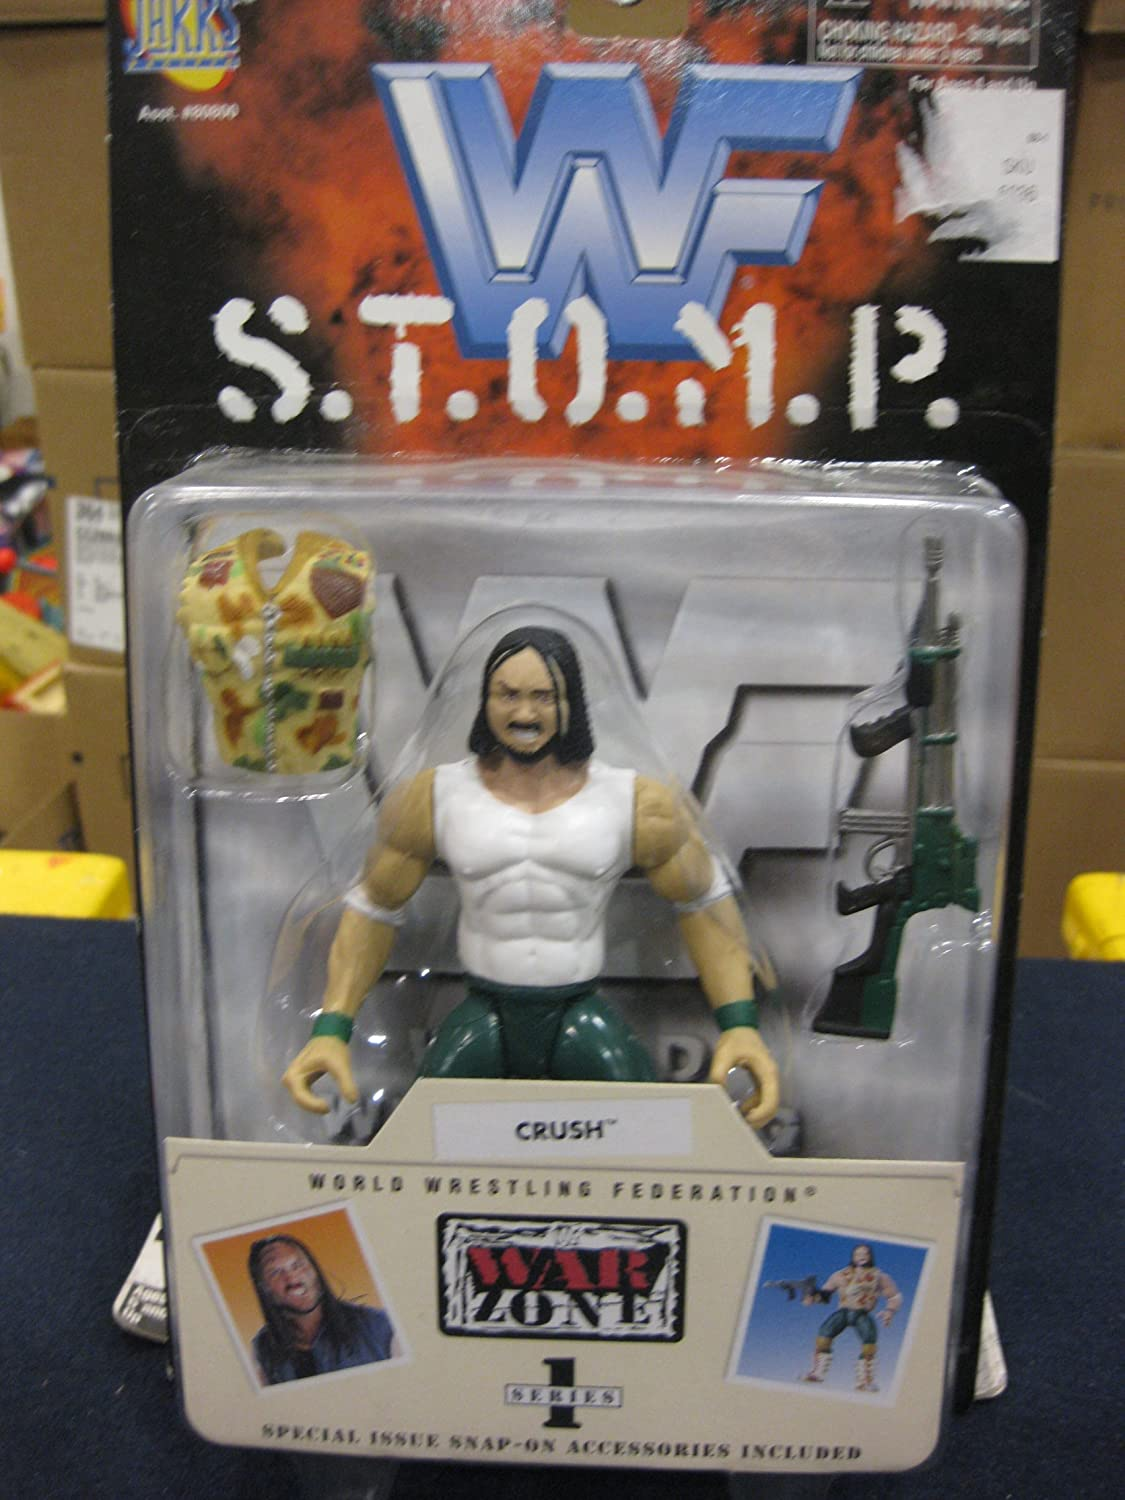 Crush Action Figure  WWF S.T.O.M.P. War Zone Series 1